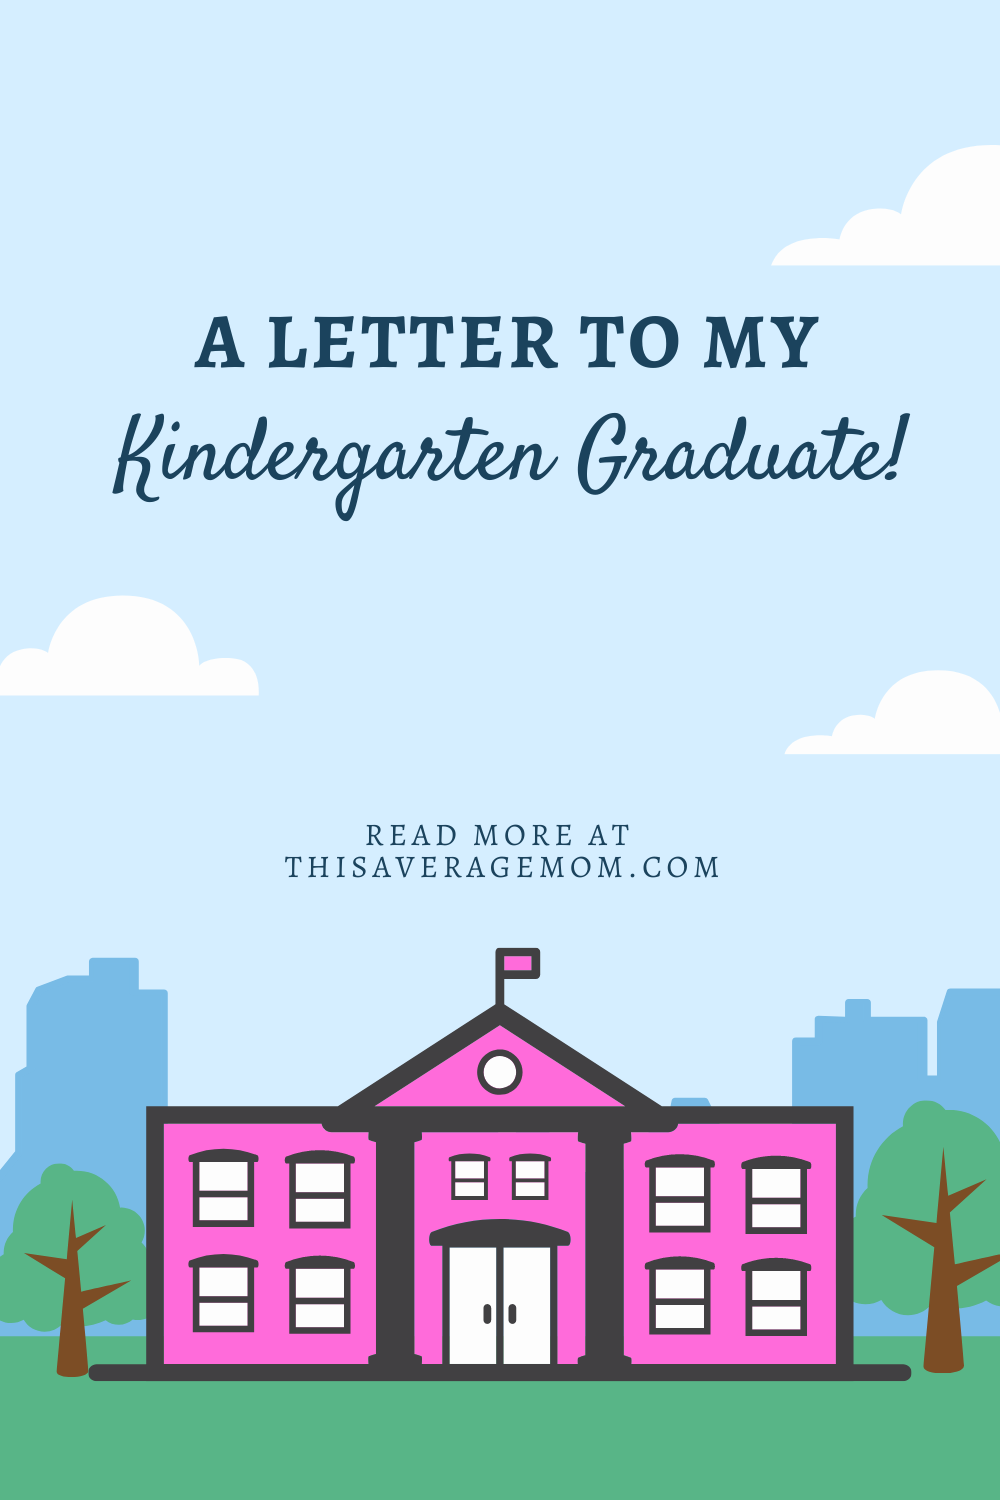 We've successfully completed the first year of school! Just sharing a little letter to my Kindergarten grad on the blog. :) #education #learning #kindergarten #quarantine